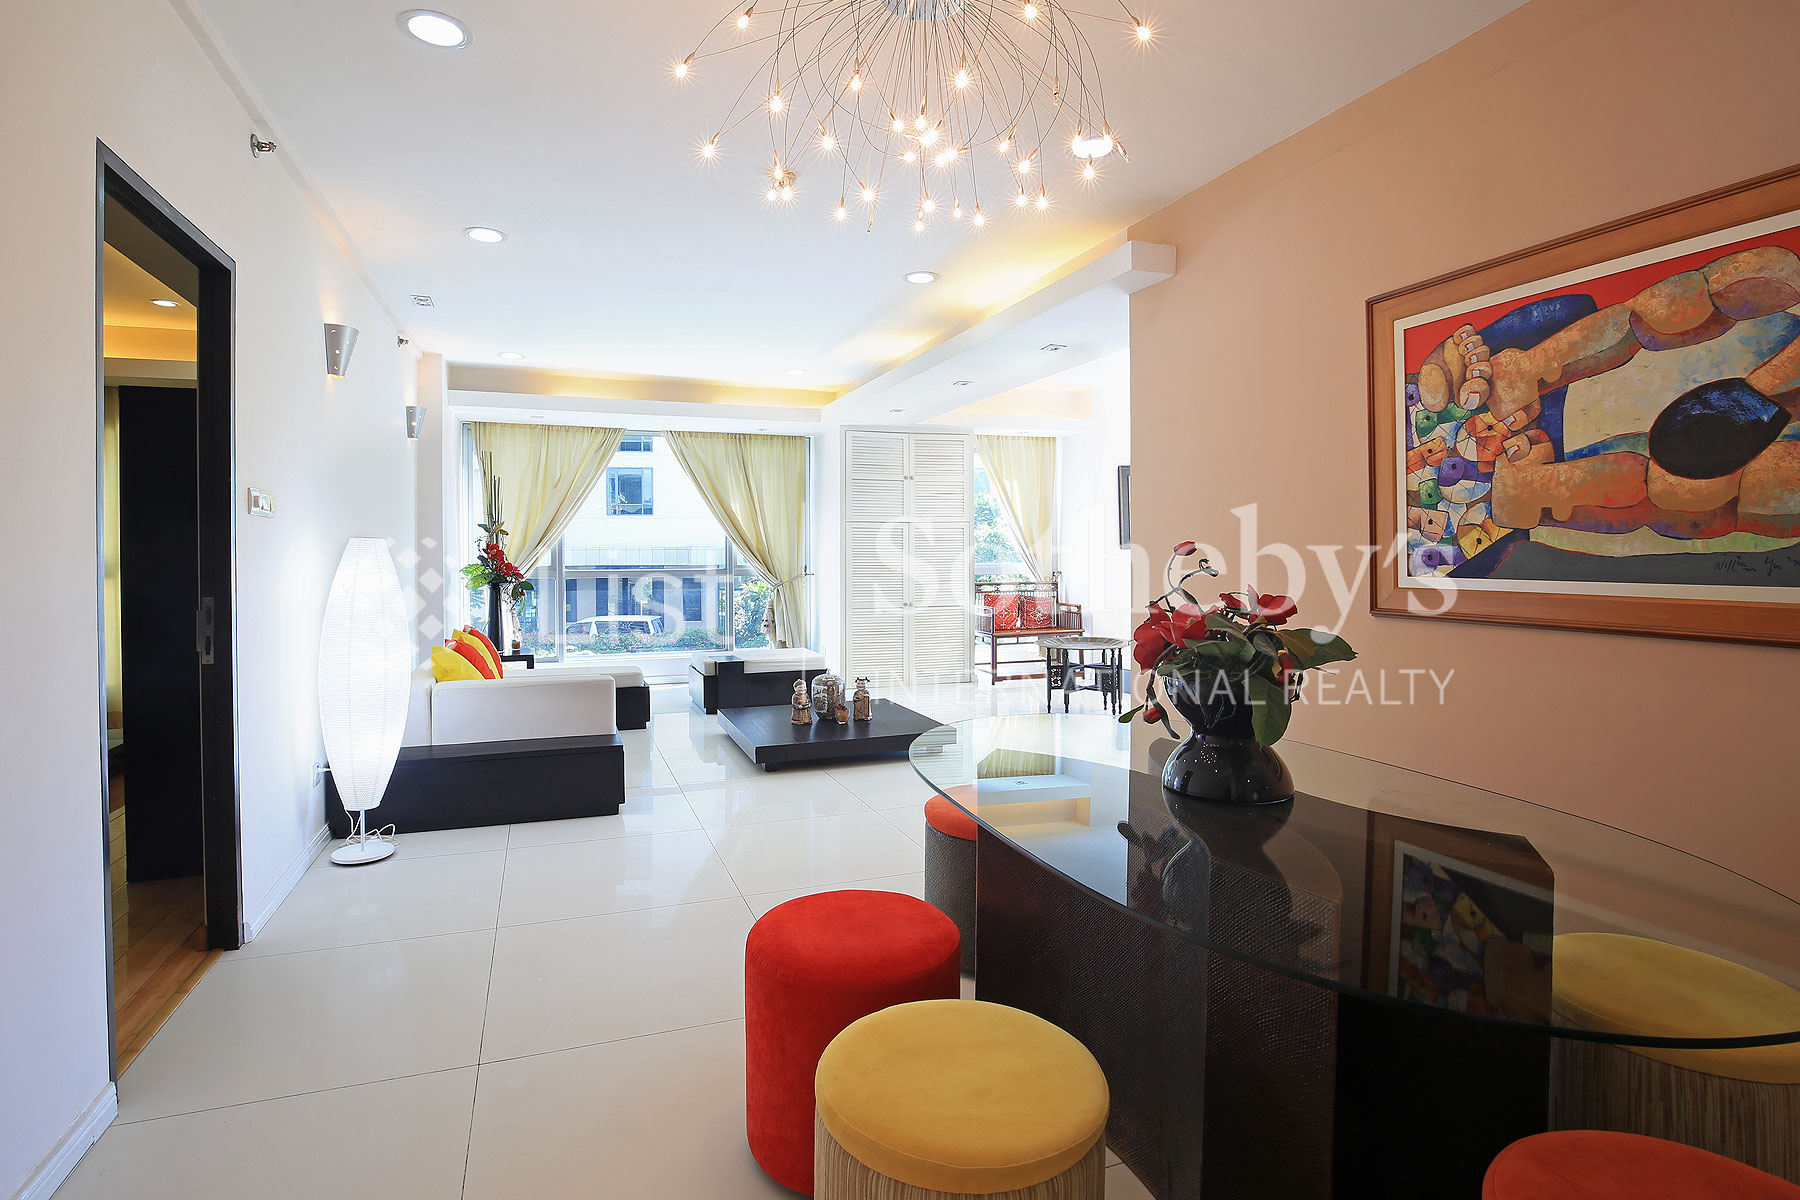 Additional photo for property listing at 2 Bedroom Contemporary Unit in BGC Kensington Place Condominum First Ave, Fort Bonifacio Global City Taguig, Luzon 1634 Filipinas